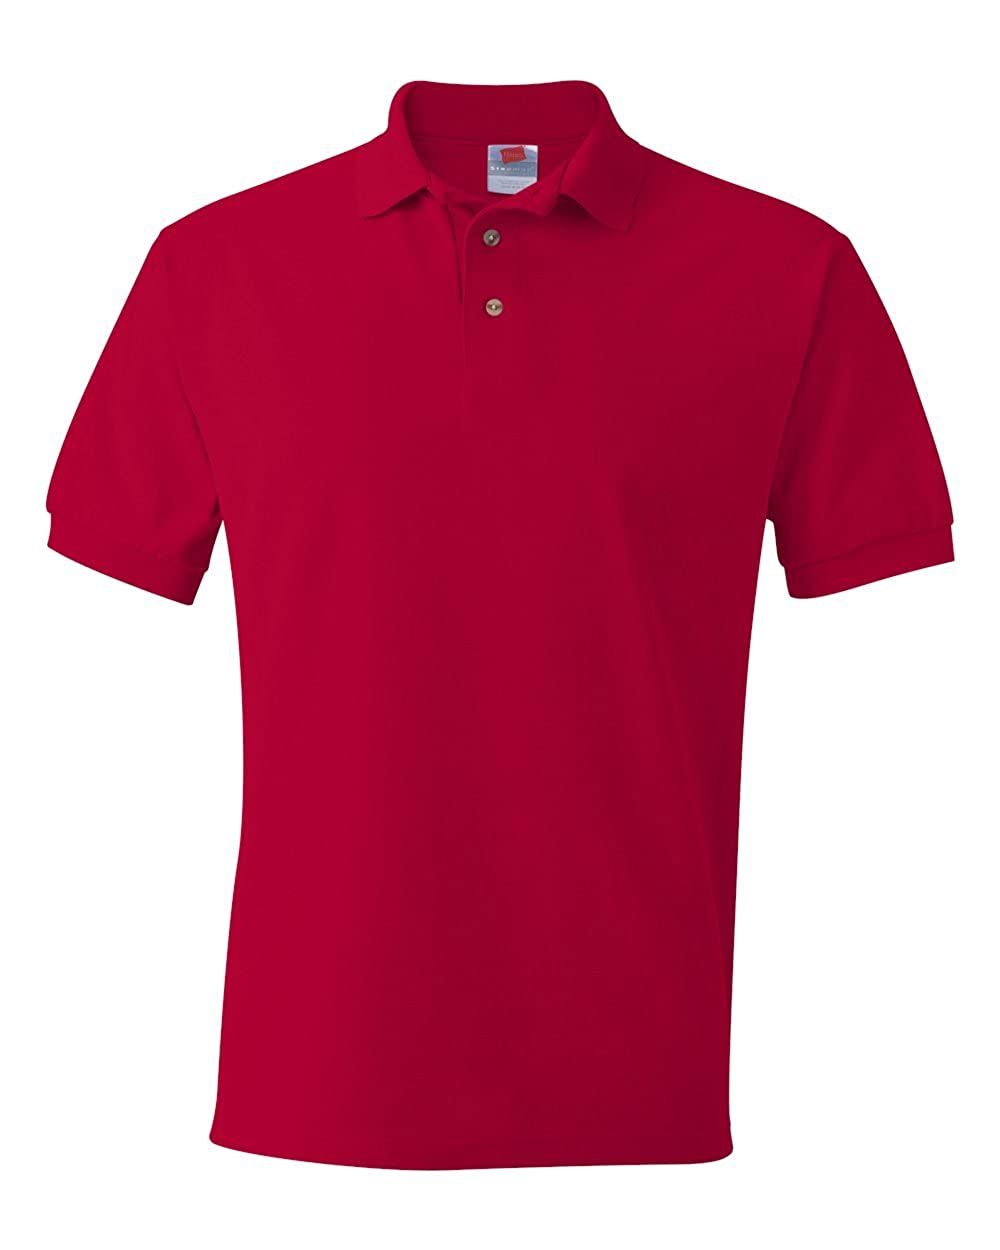 Rouge - Rouge Profond 3XL Hanes Tagless Polo Manches Courtes Organique Periodic pour Homme Hommes